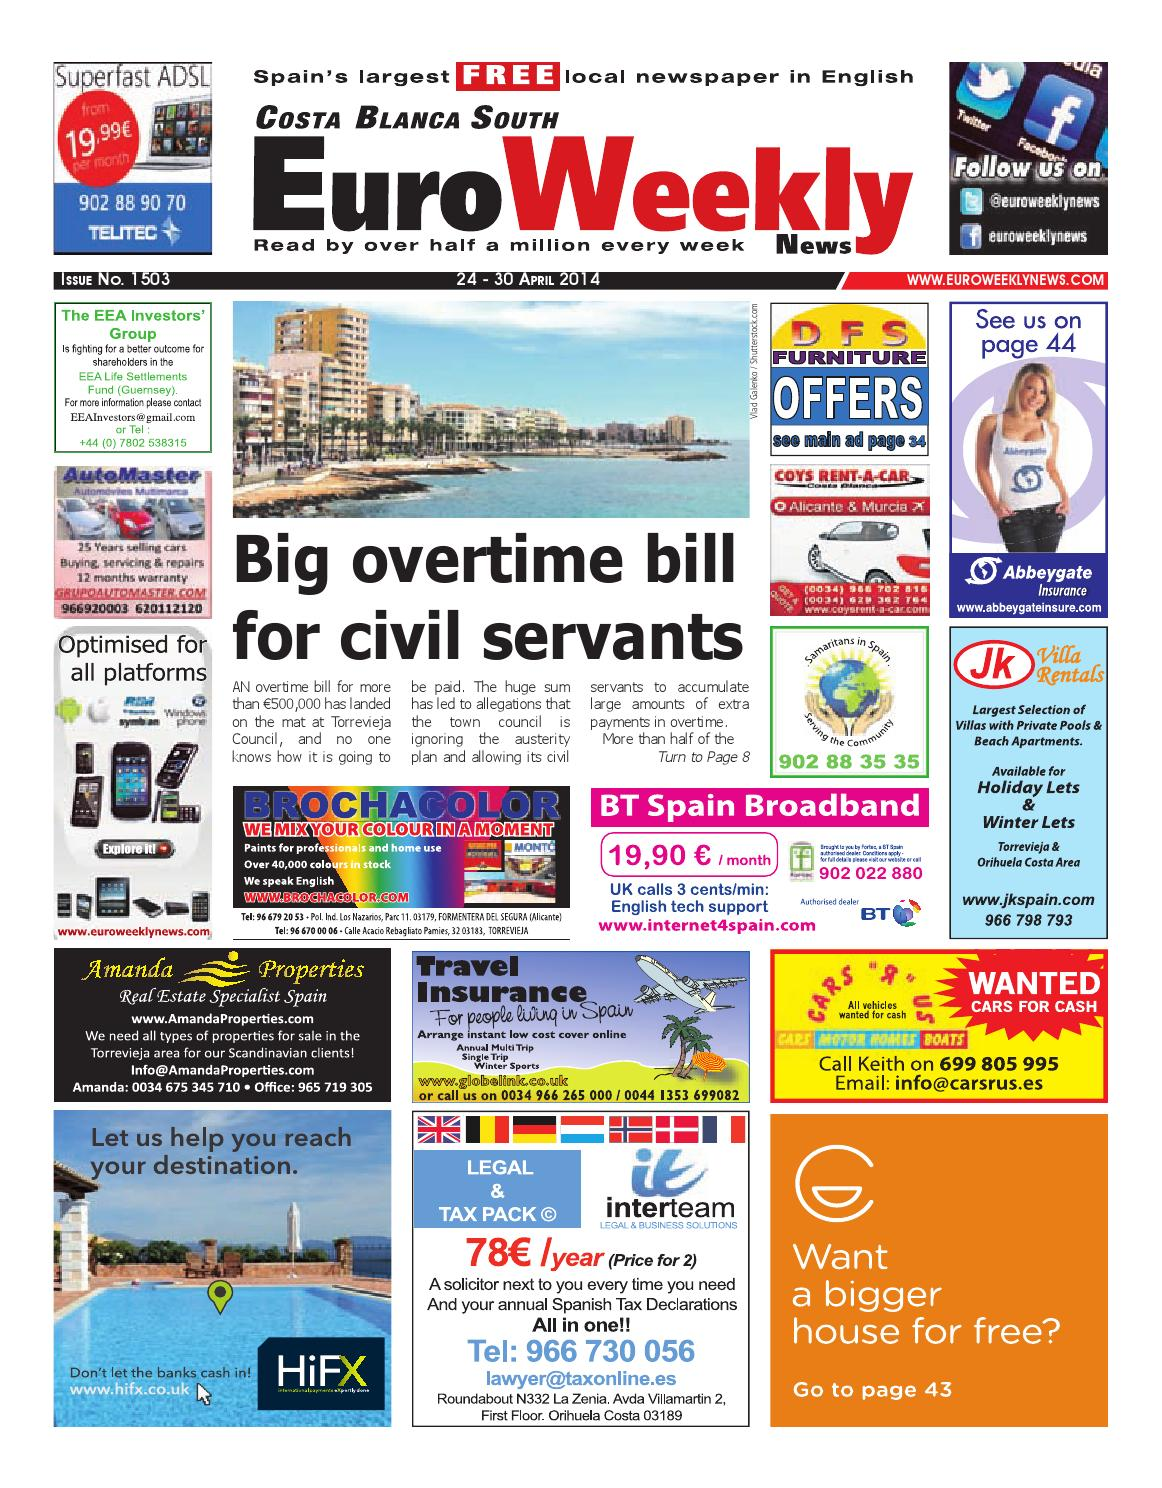 Euro Weekly News - Costa Blanca South 24 - 30 April 2014